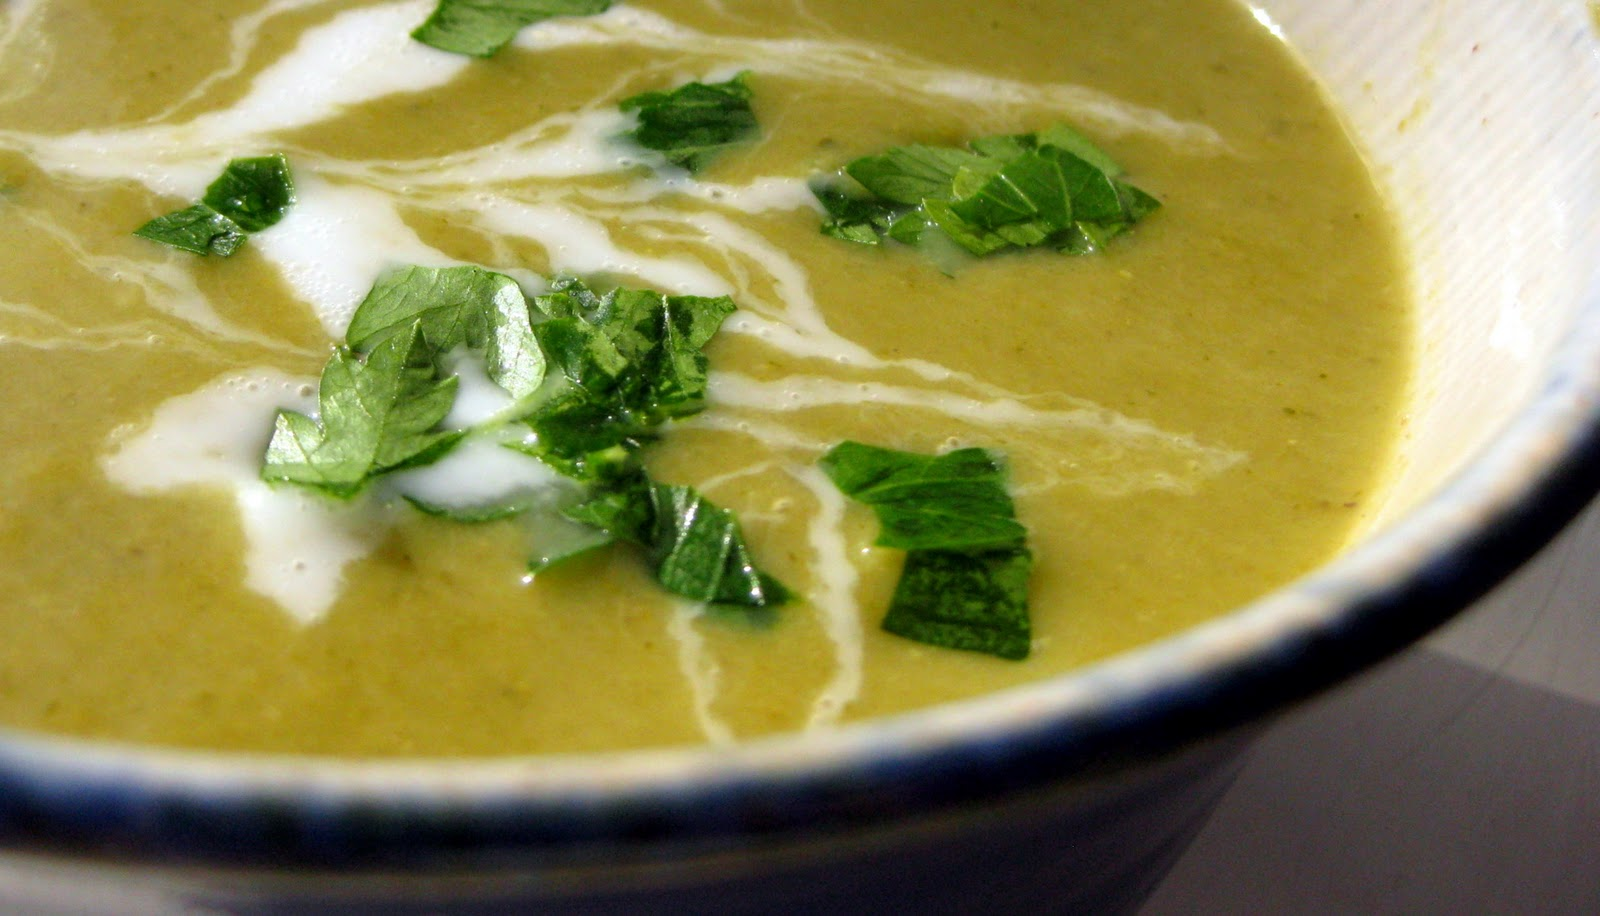 This Gluten-free Life Creamy Asparagus Soup with Coconut Milk